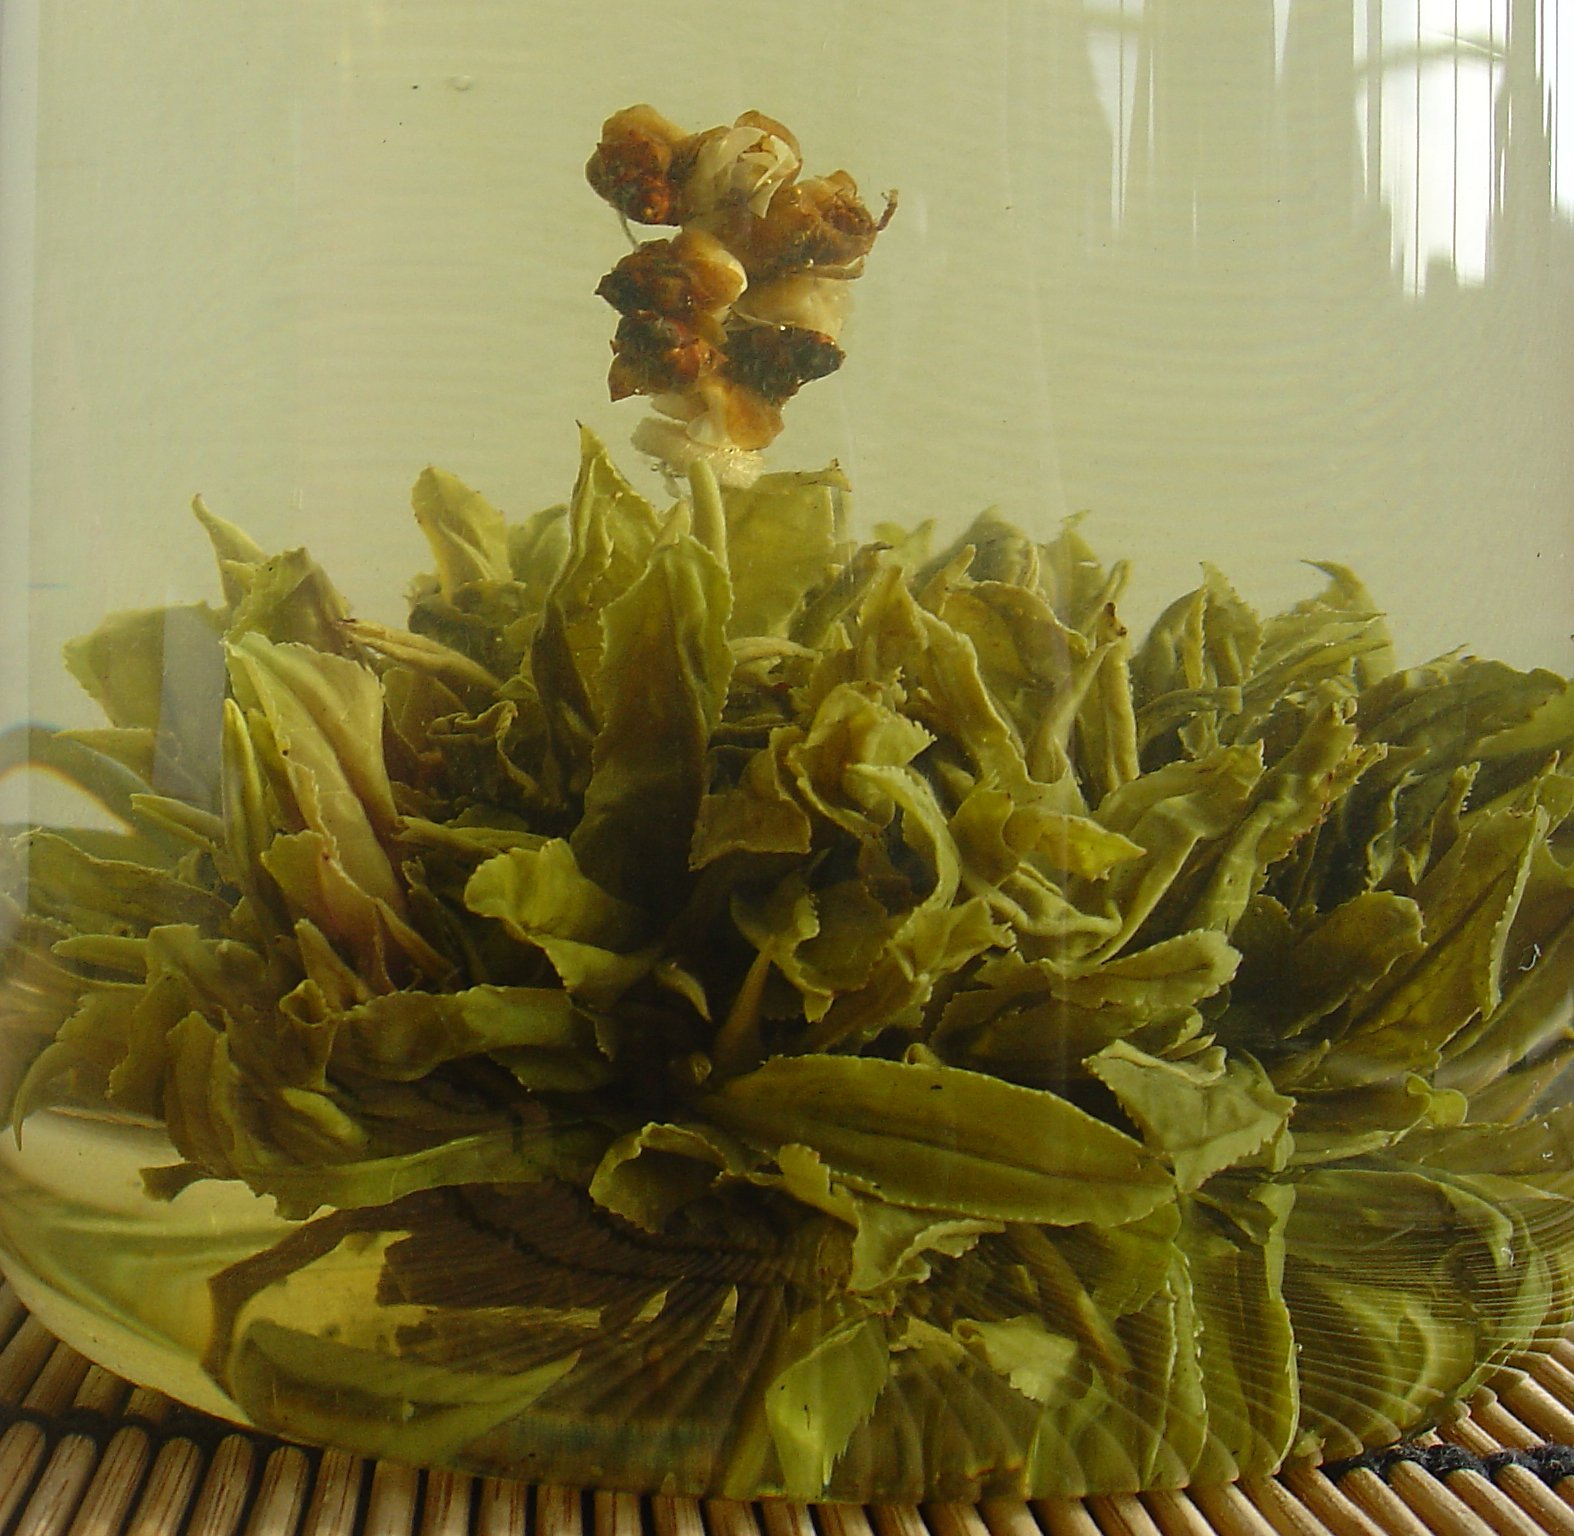 China Yin Yuan Green Tea Opened Out